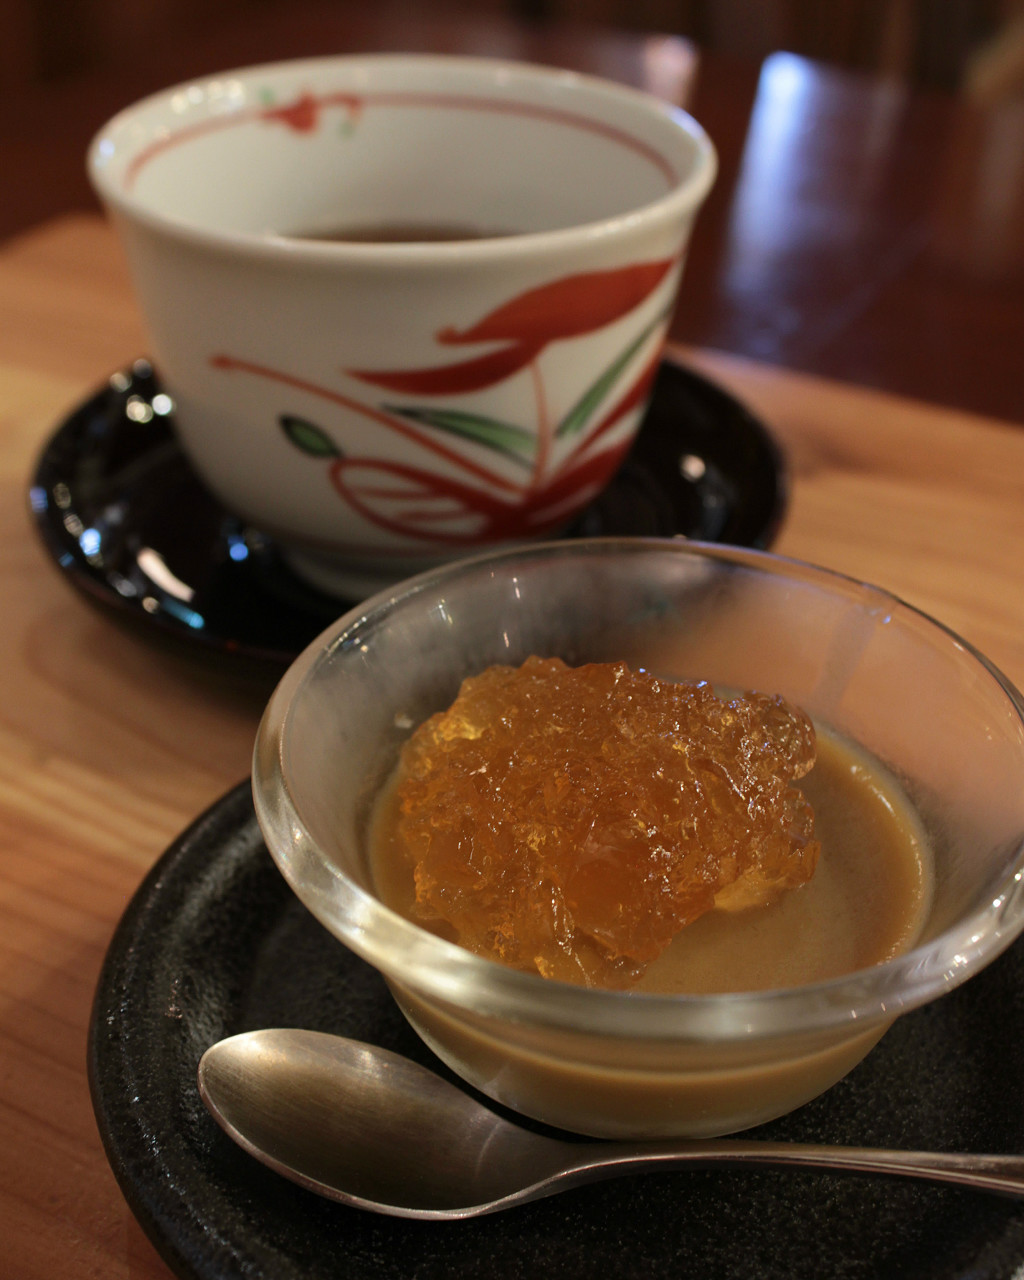 Sweet koji jelly dessert with tea at Kouji Park's bar in Ono, Kanazawa, Japan